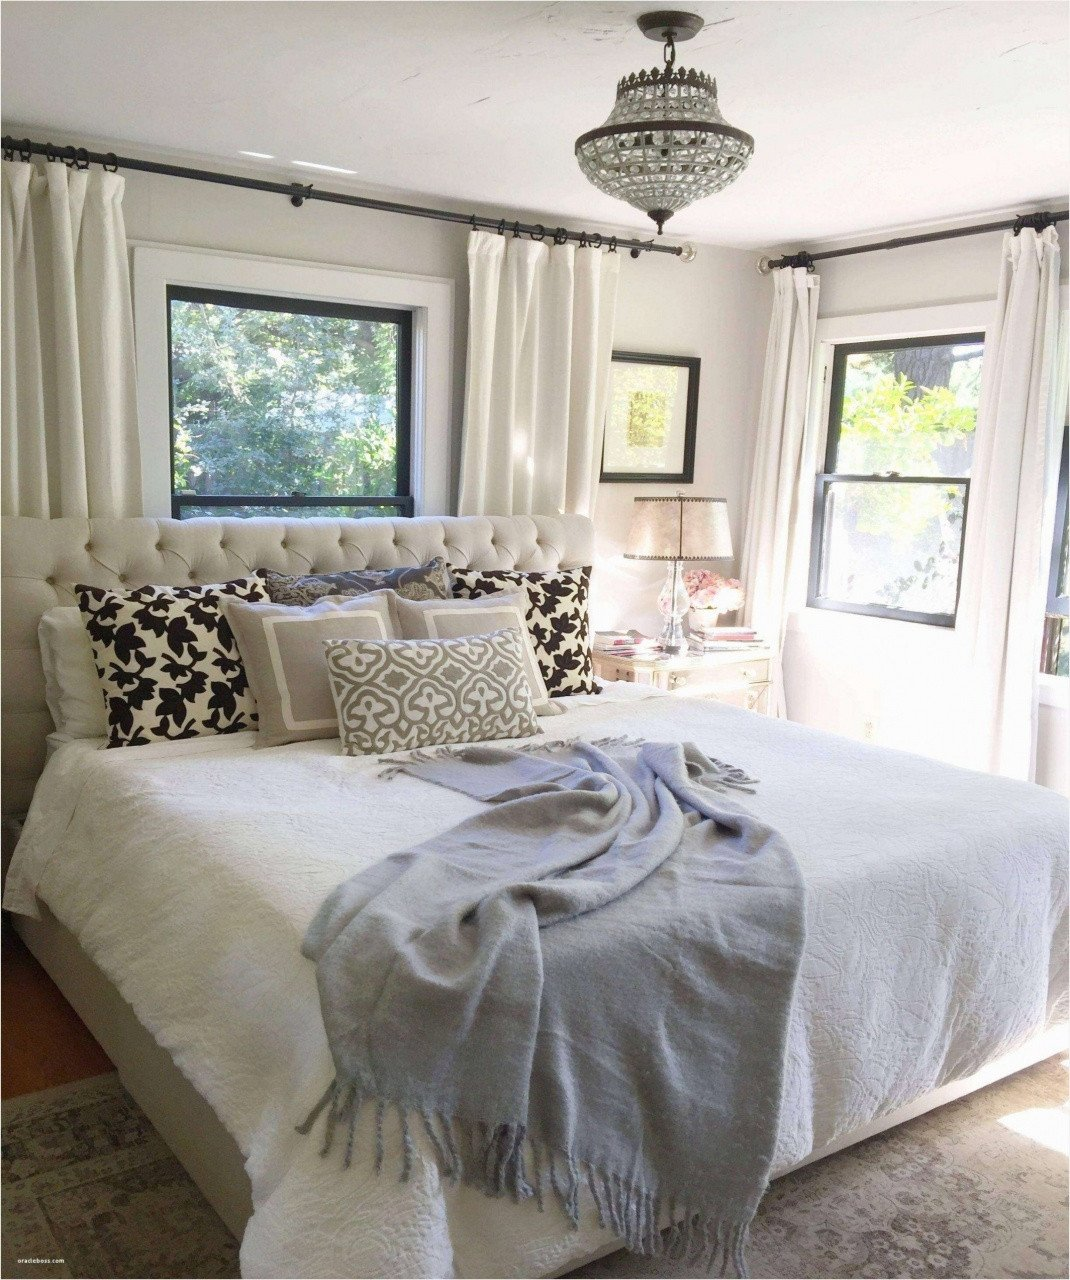 Ikea White Bedroom Furniture Best Of Cute Small Bedroom Decorating Ideas – the New Daily Nation